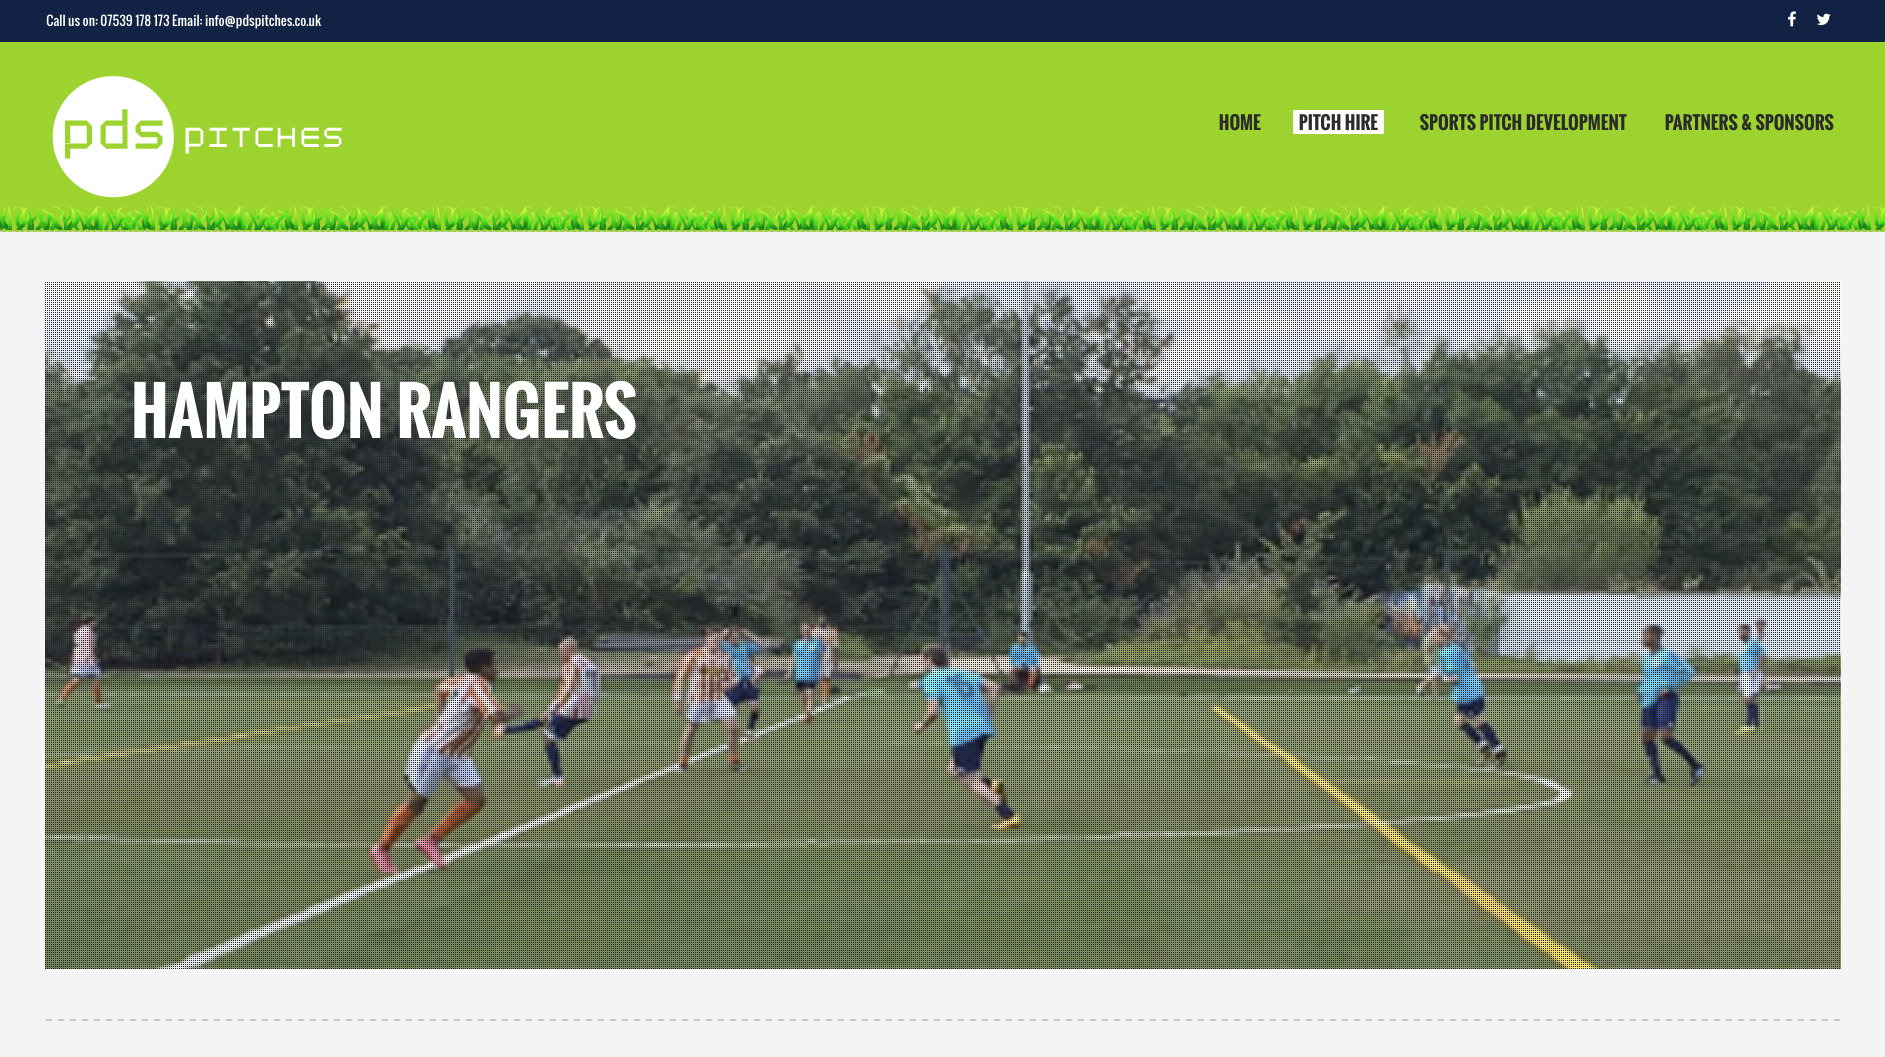 Hampton Pitch Hire banner for PDS Pitches location page by Collective Digital